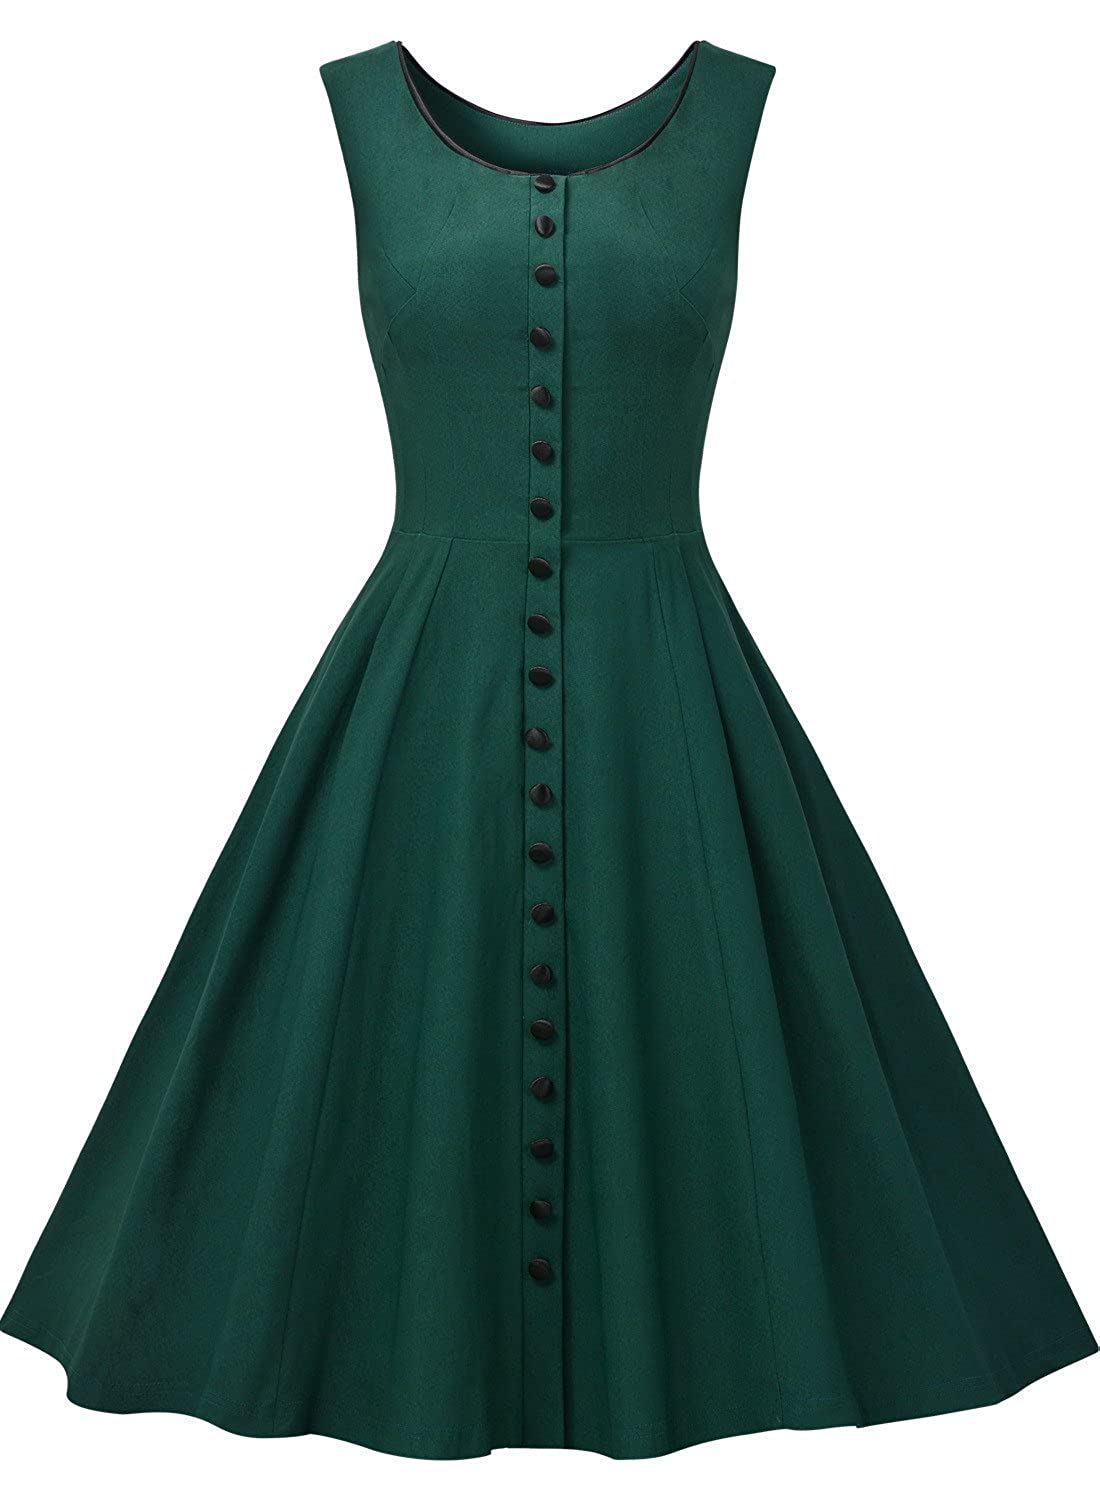 MissMay Women\'s Vintage 1950s Elegant Sleeveless Cocktail Party ...